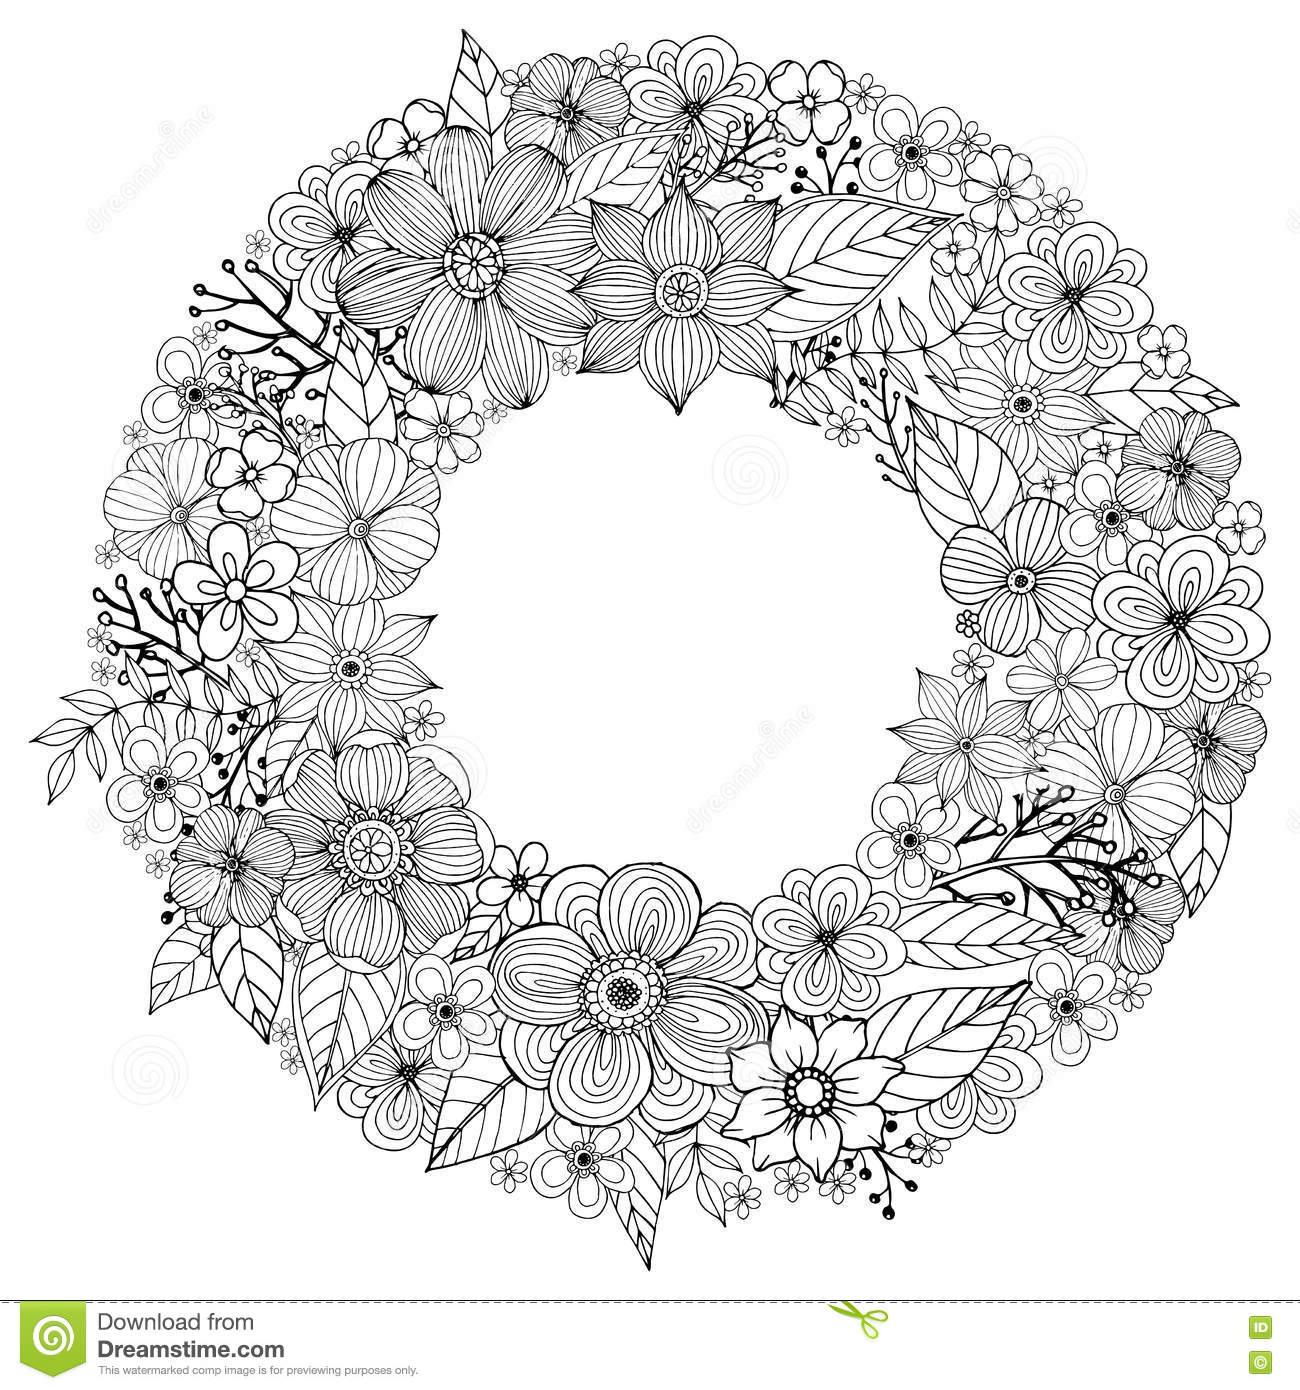 Flower Doodle Drawing Freehand , Coloring Page With Doodle ...